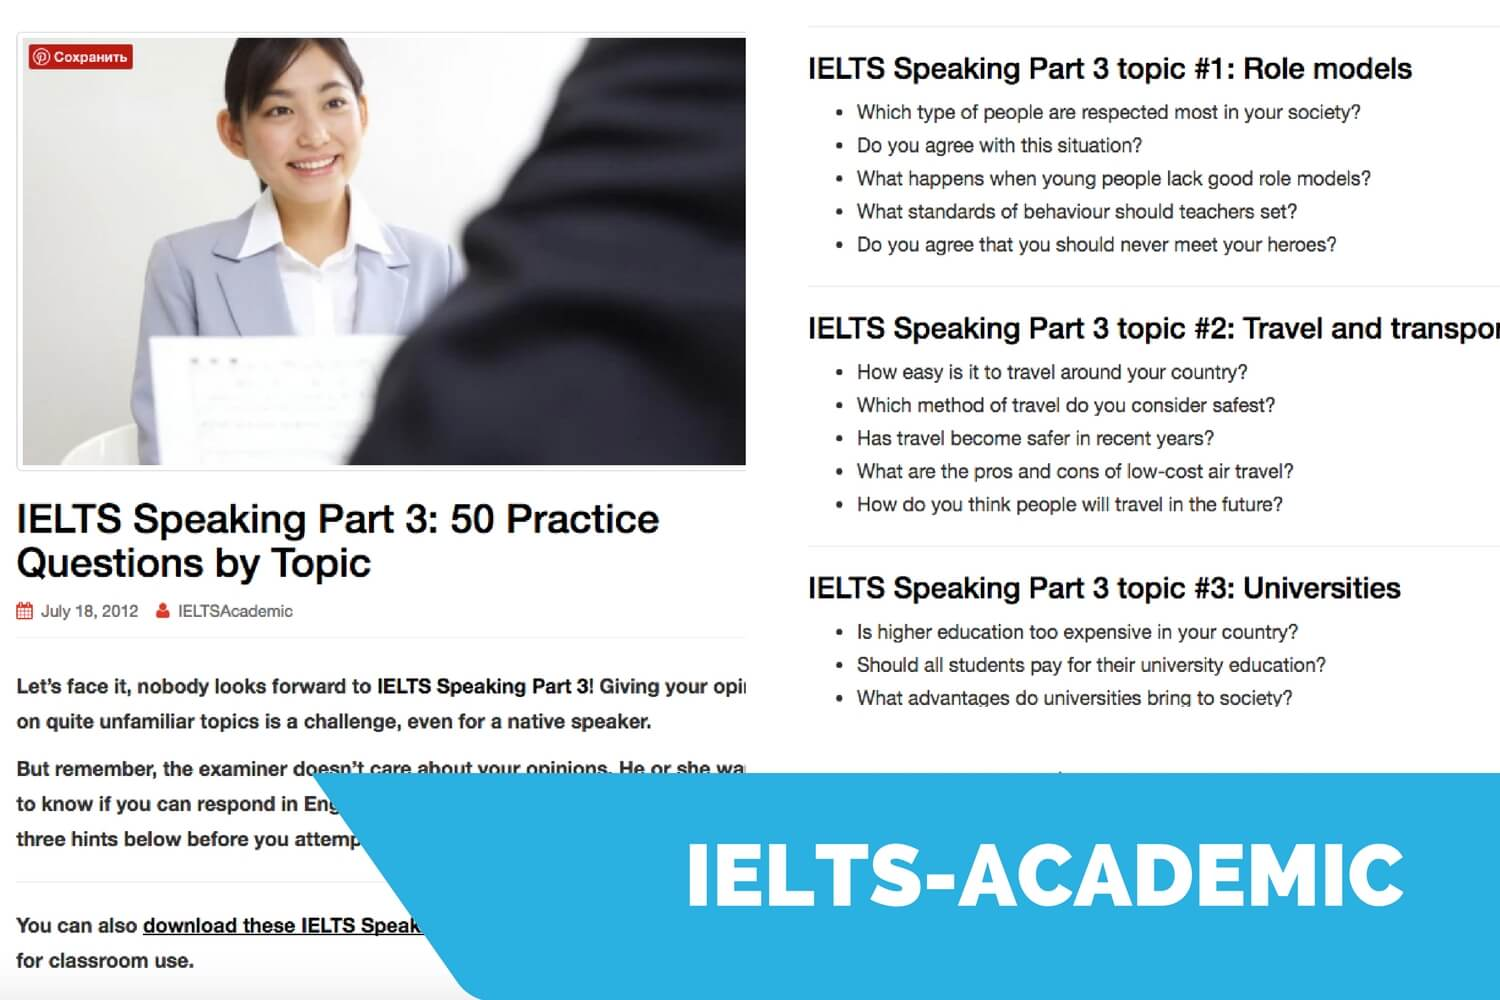 ielts-acasemic speaking sample questions